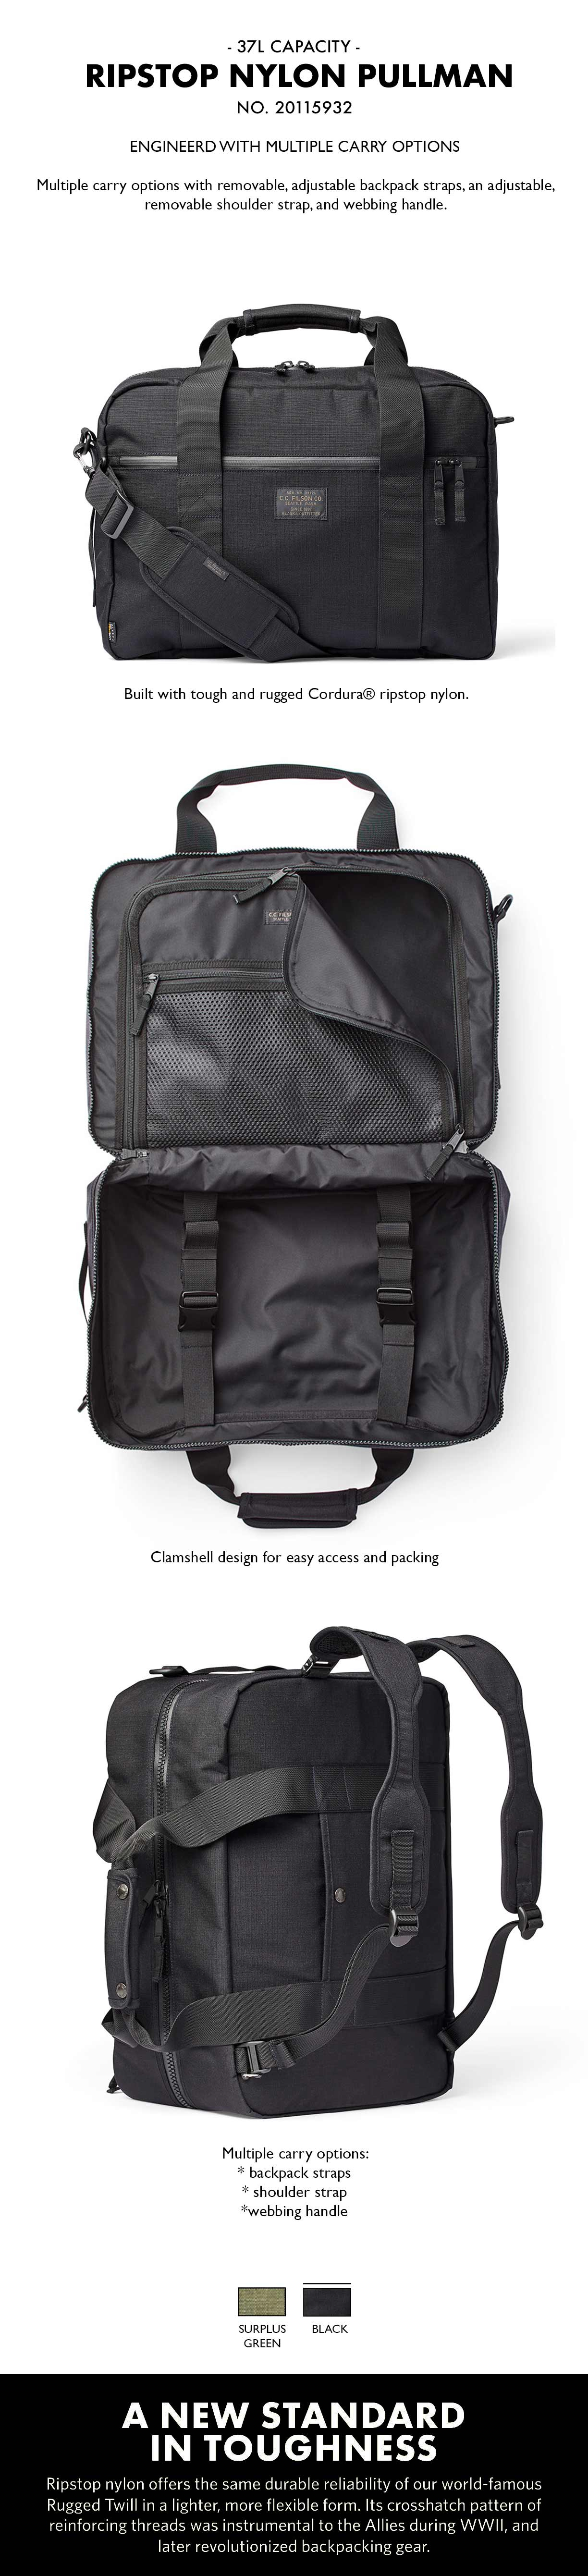 Ripstop Nylon Pullman 20115932-Black Product-information